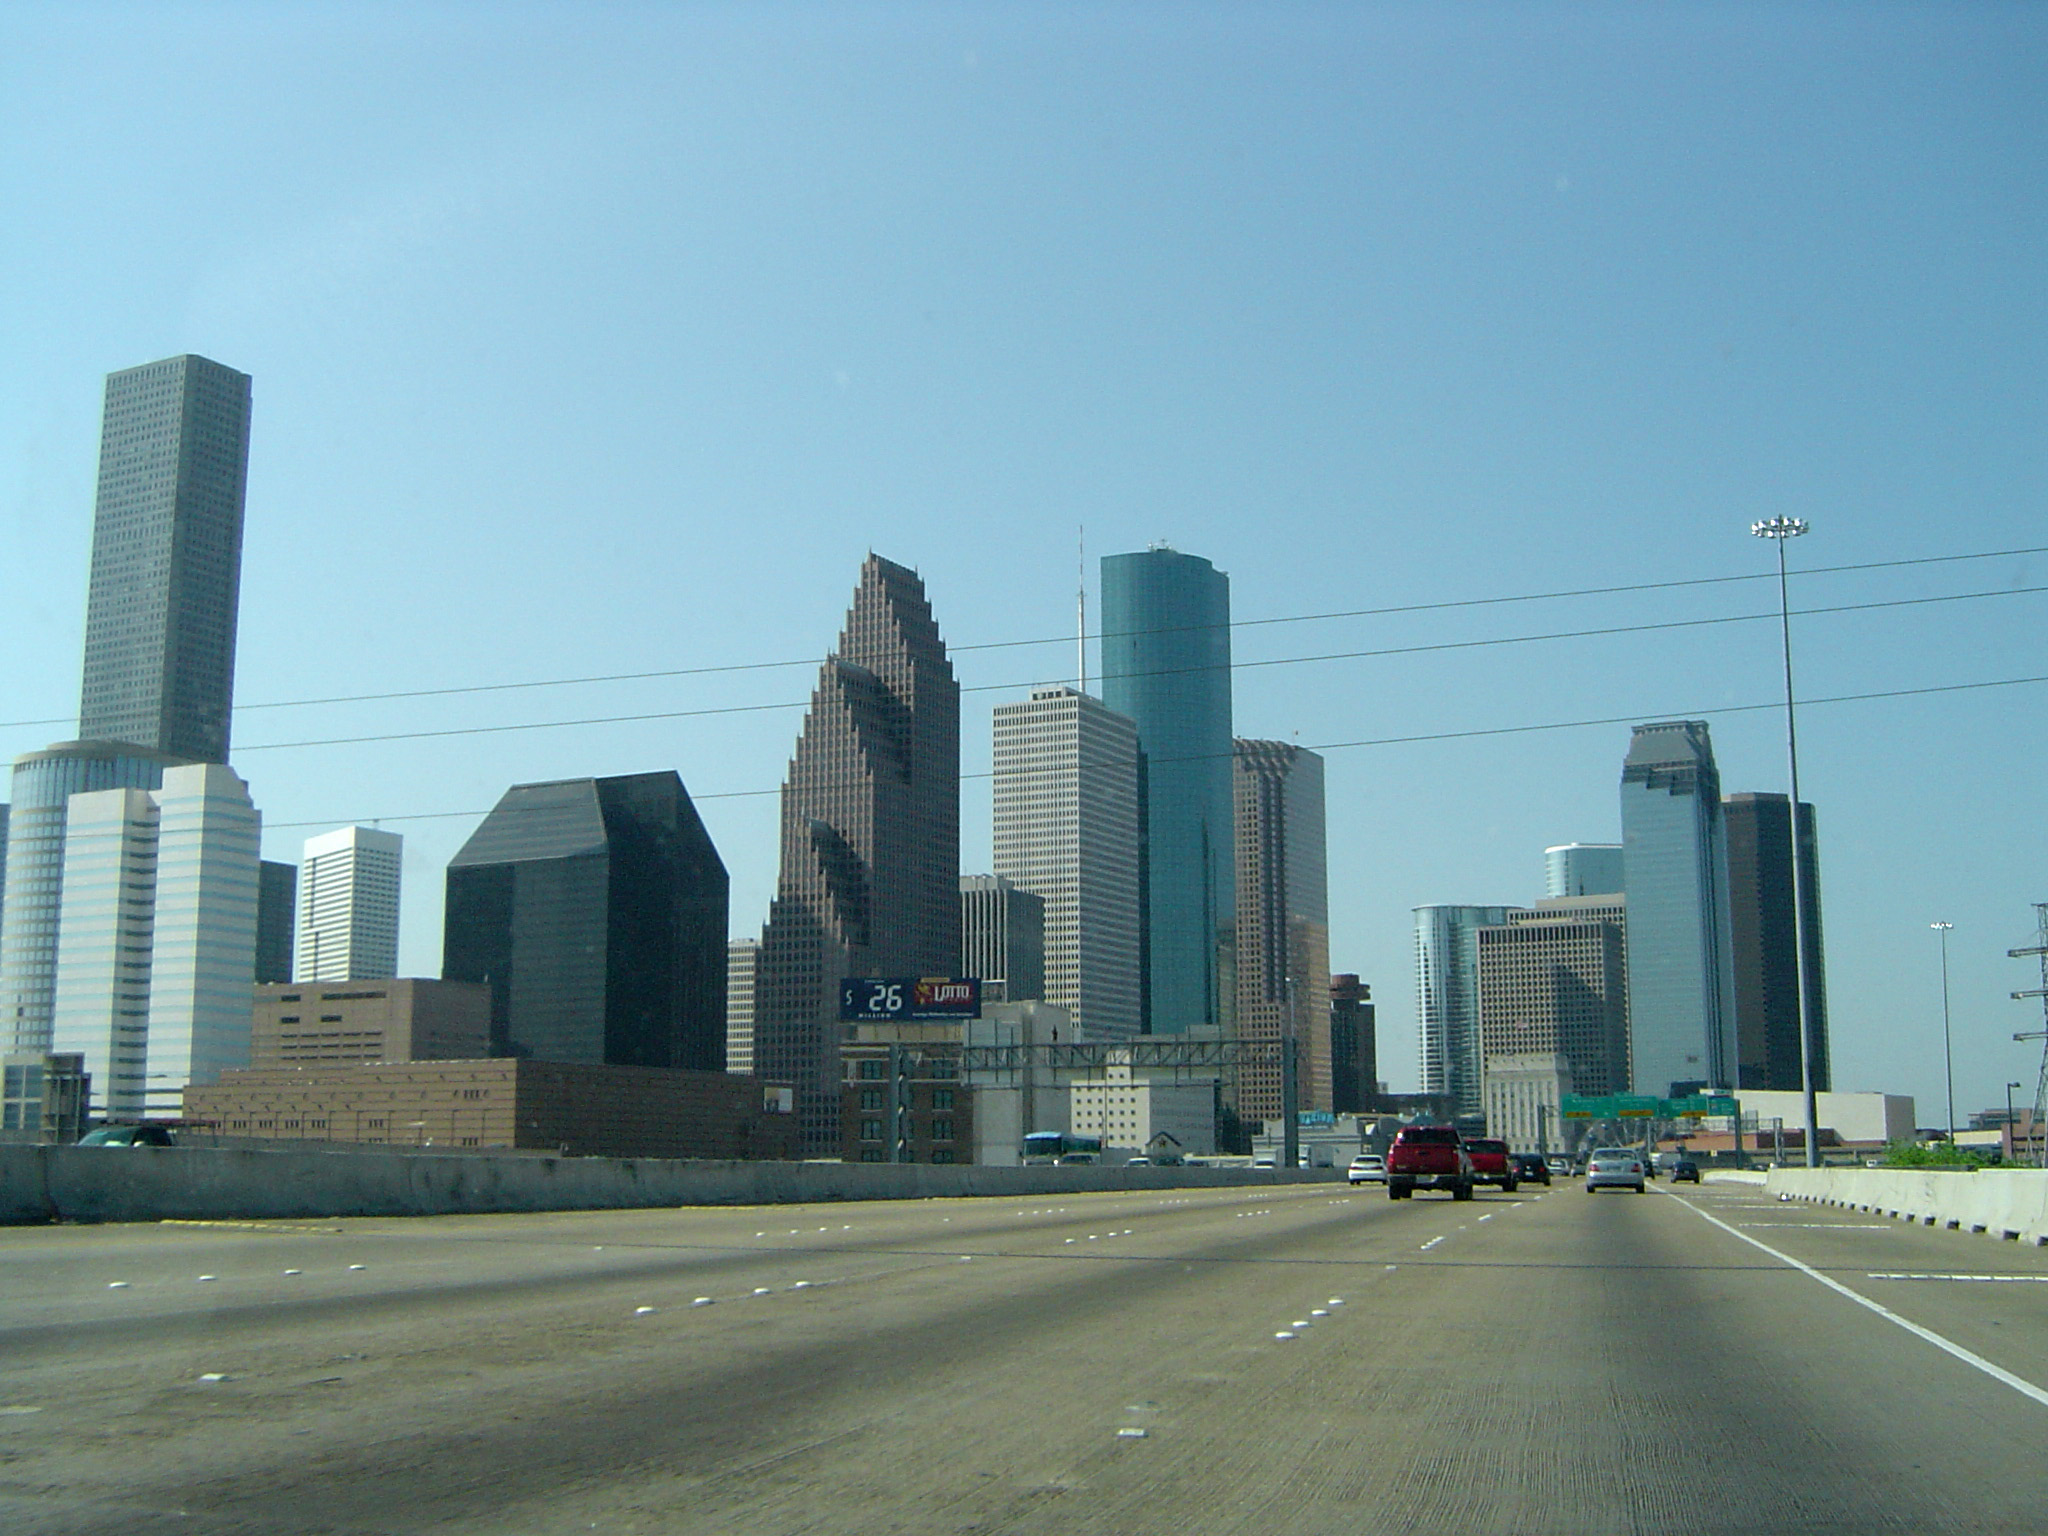 Attractive Architectural Buildings Along Freeway on Light Blue Sky Background.